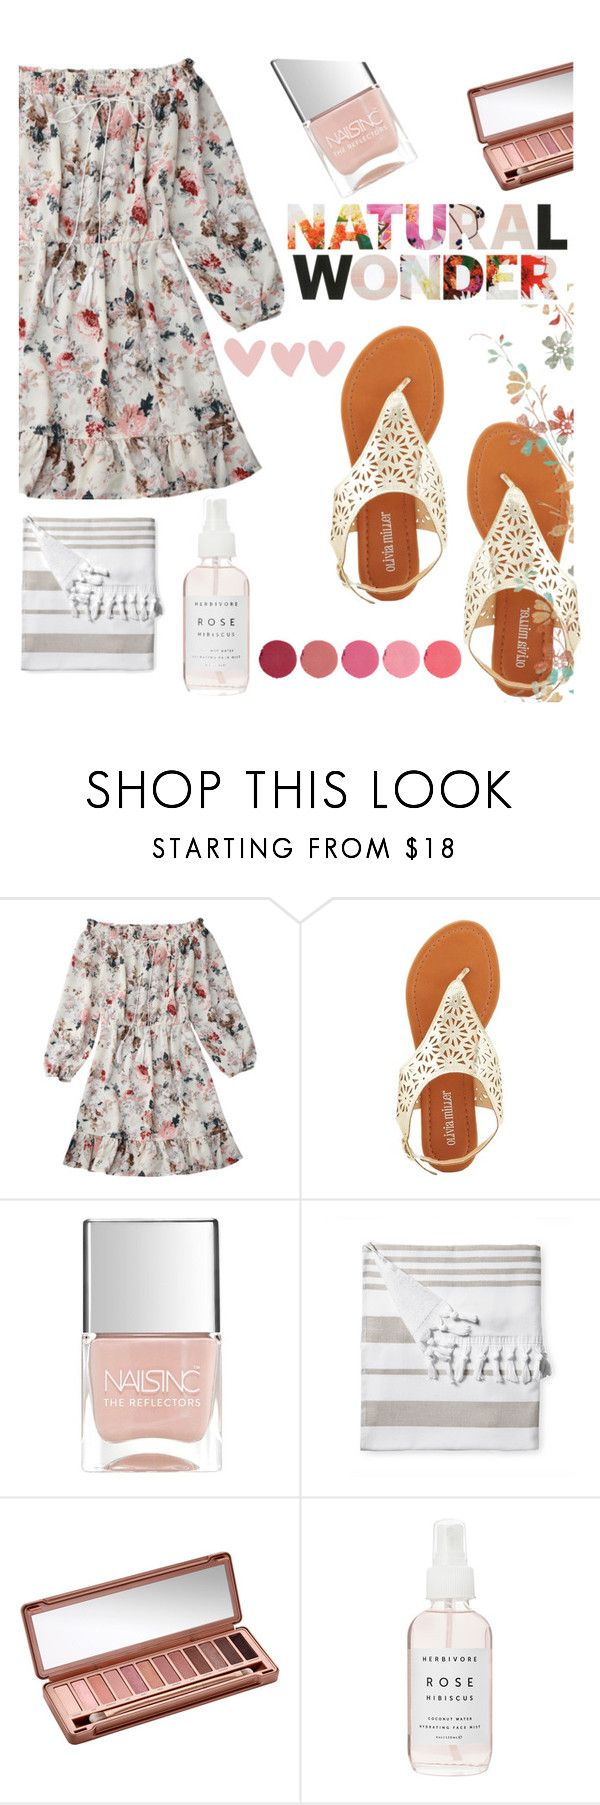 """""""TS May 19th, 2017"""" by buflie on Polyvore featuring Olivia Miller, Nails Inc., Serena & Lily, Urban Decay, Herbivore and Kjaer Weis"""